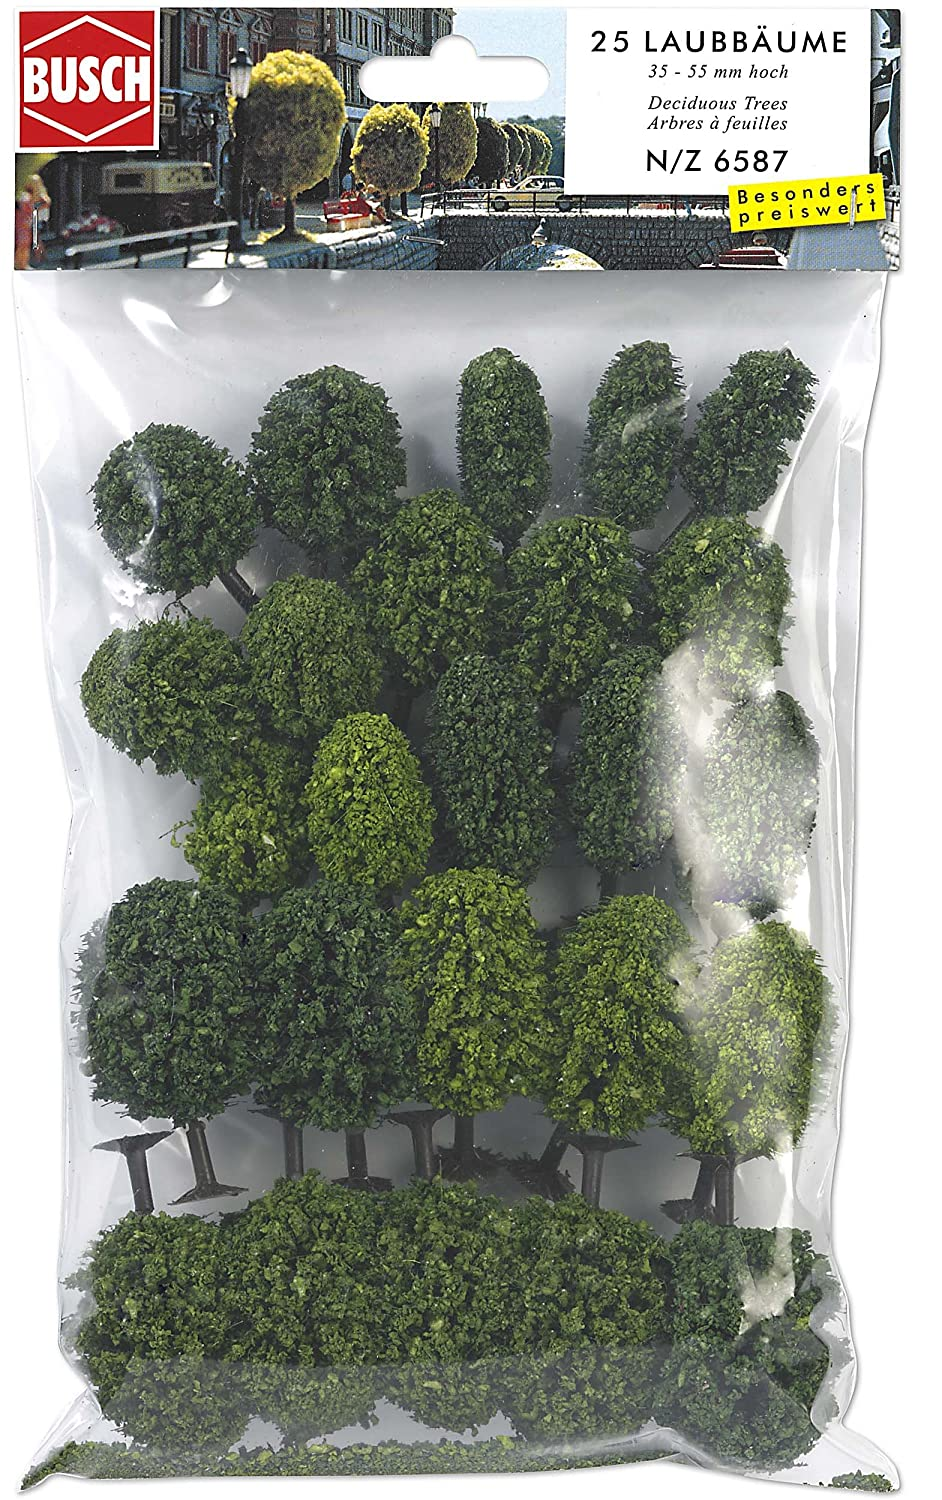 Amazon.com: N Scale Decid Trees 35-55mm 25/: Toys & Games